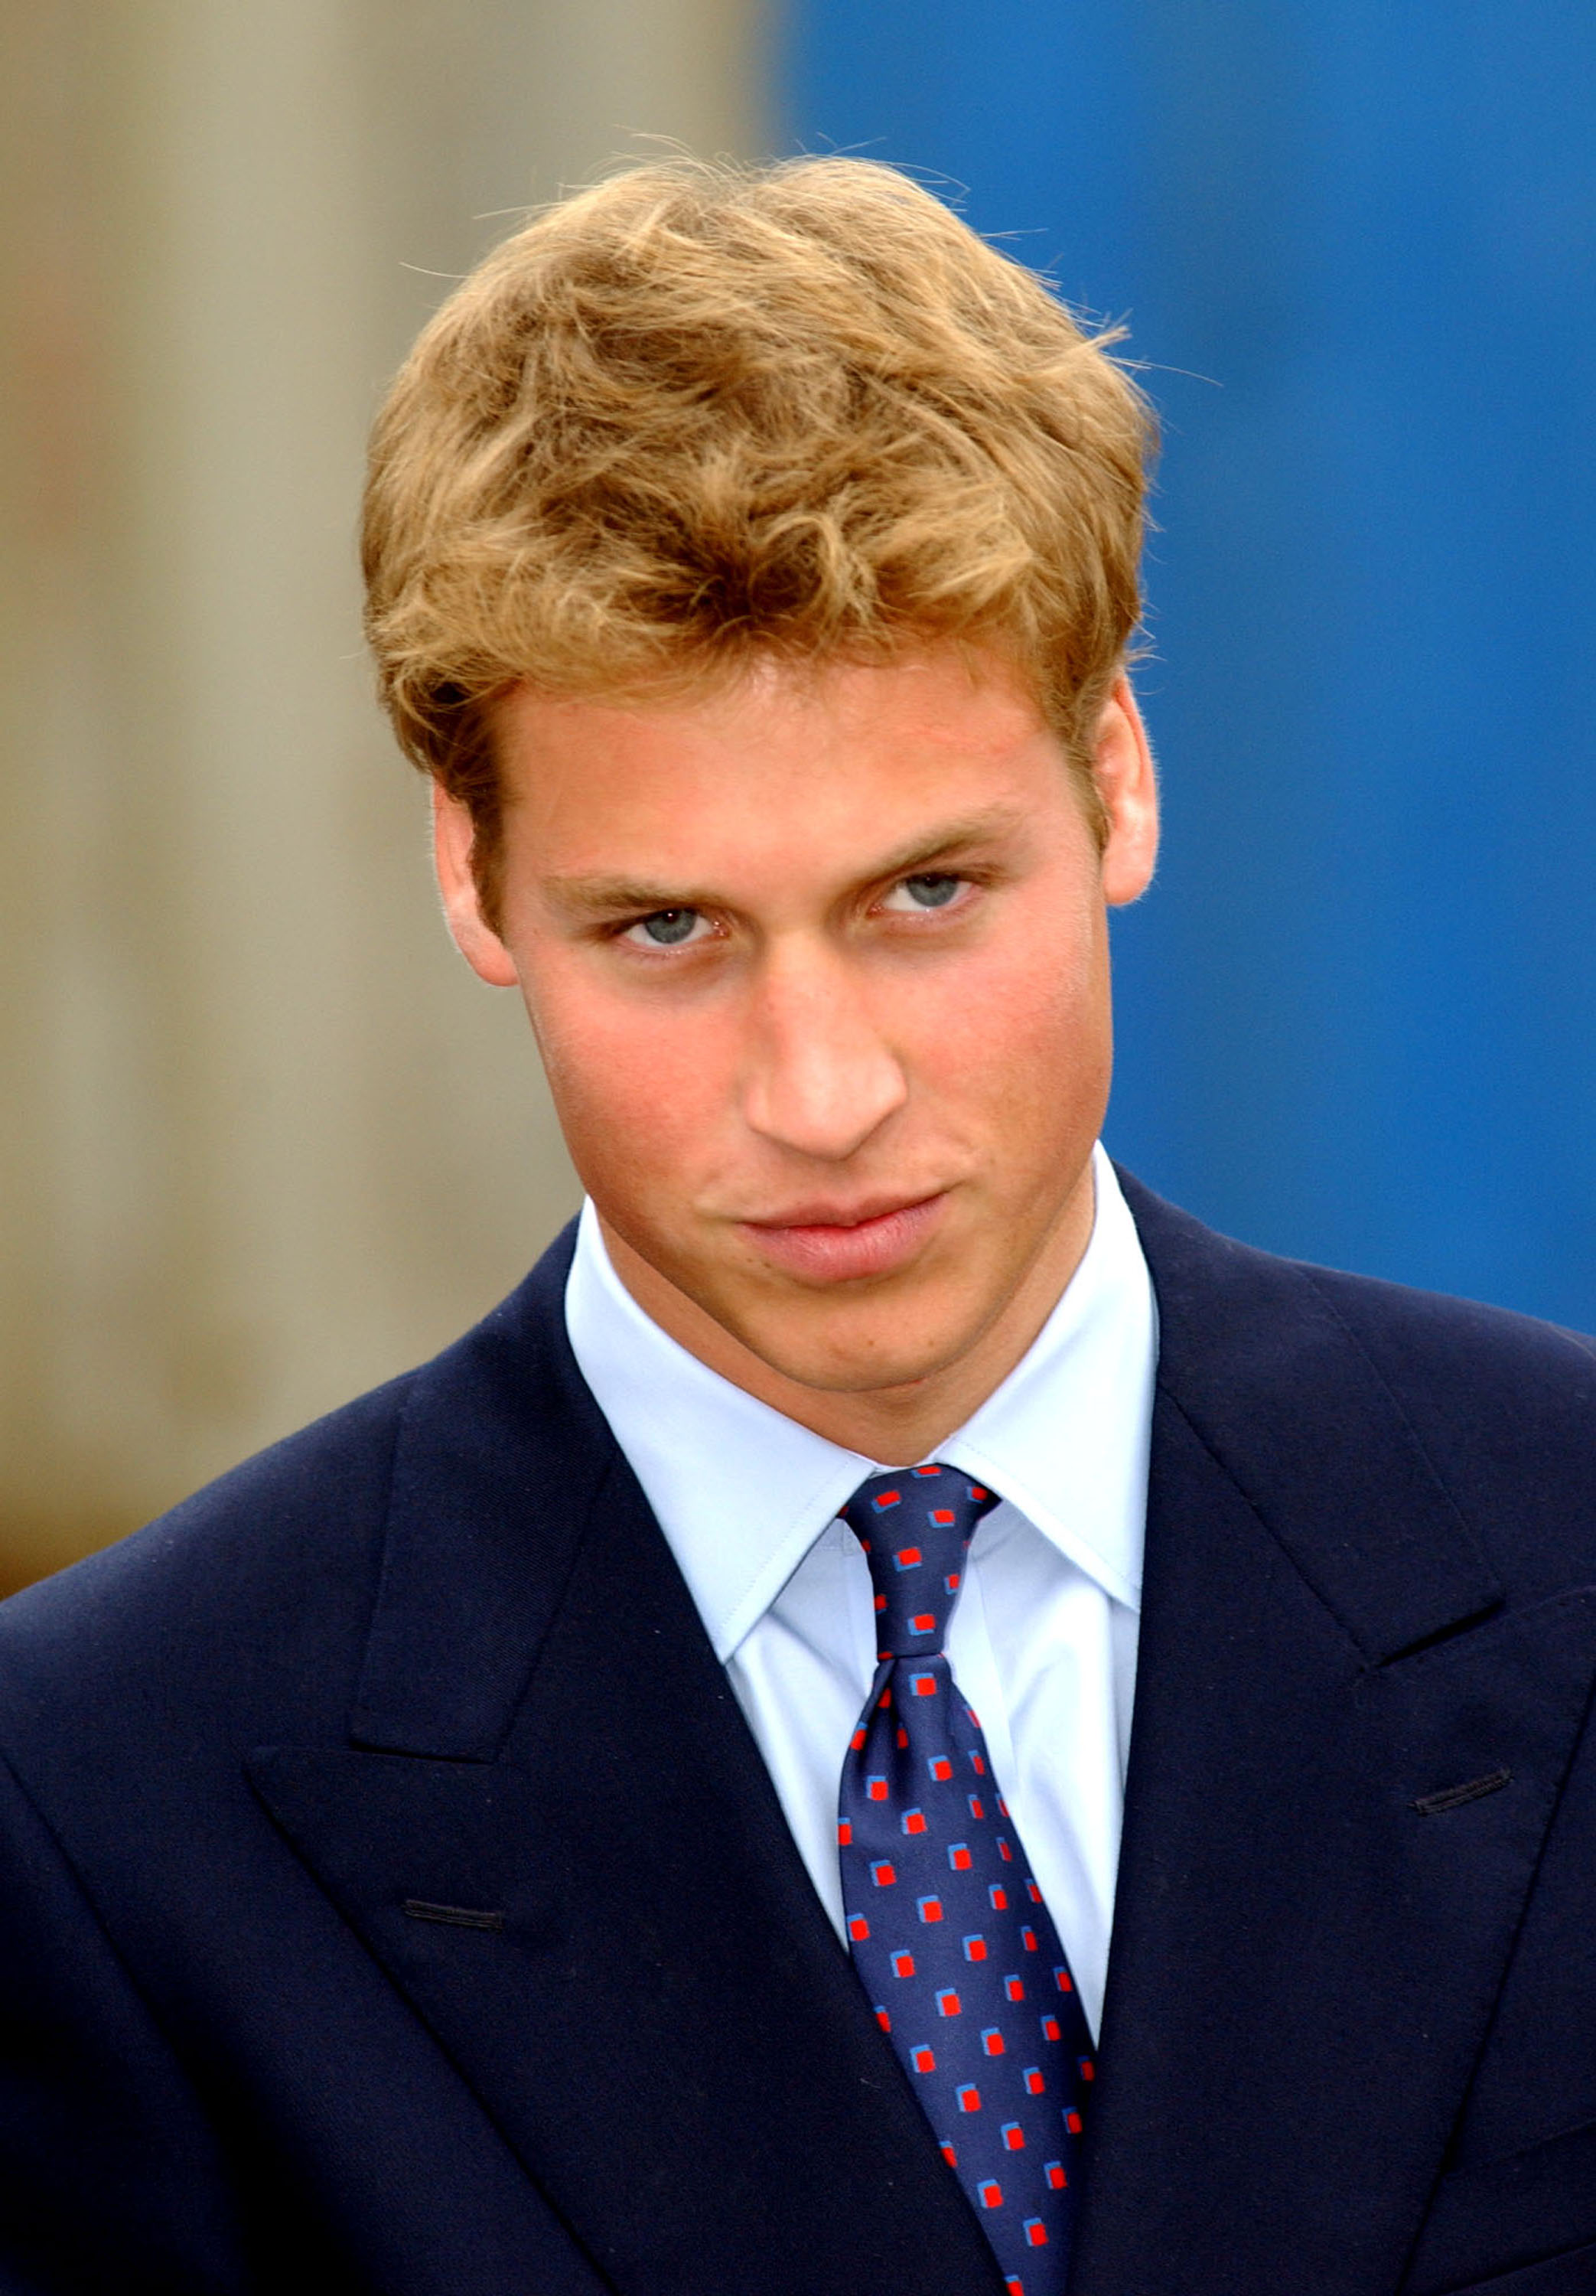 [Image: September-2001-Prince-William-showed-gri...lasgow.jpg]